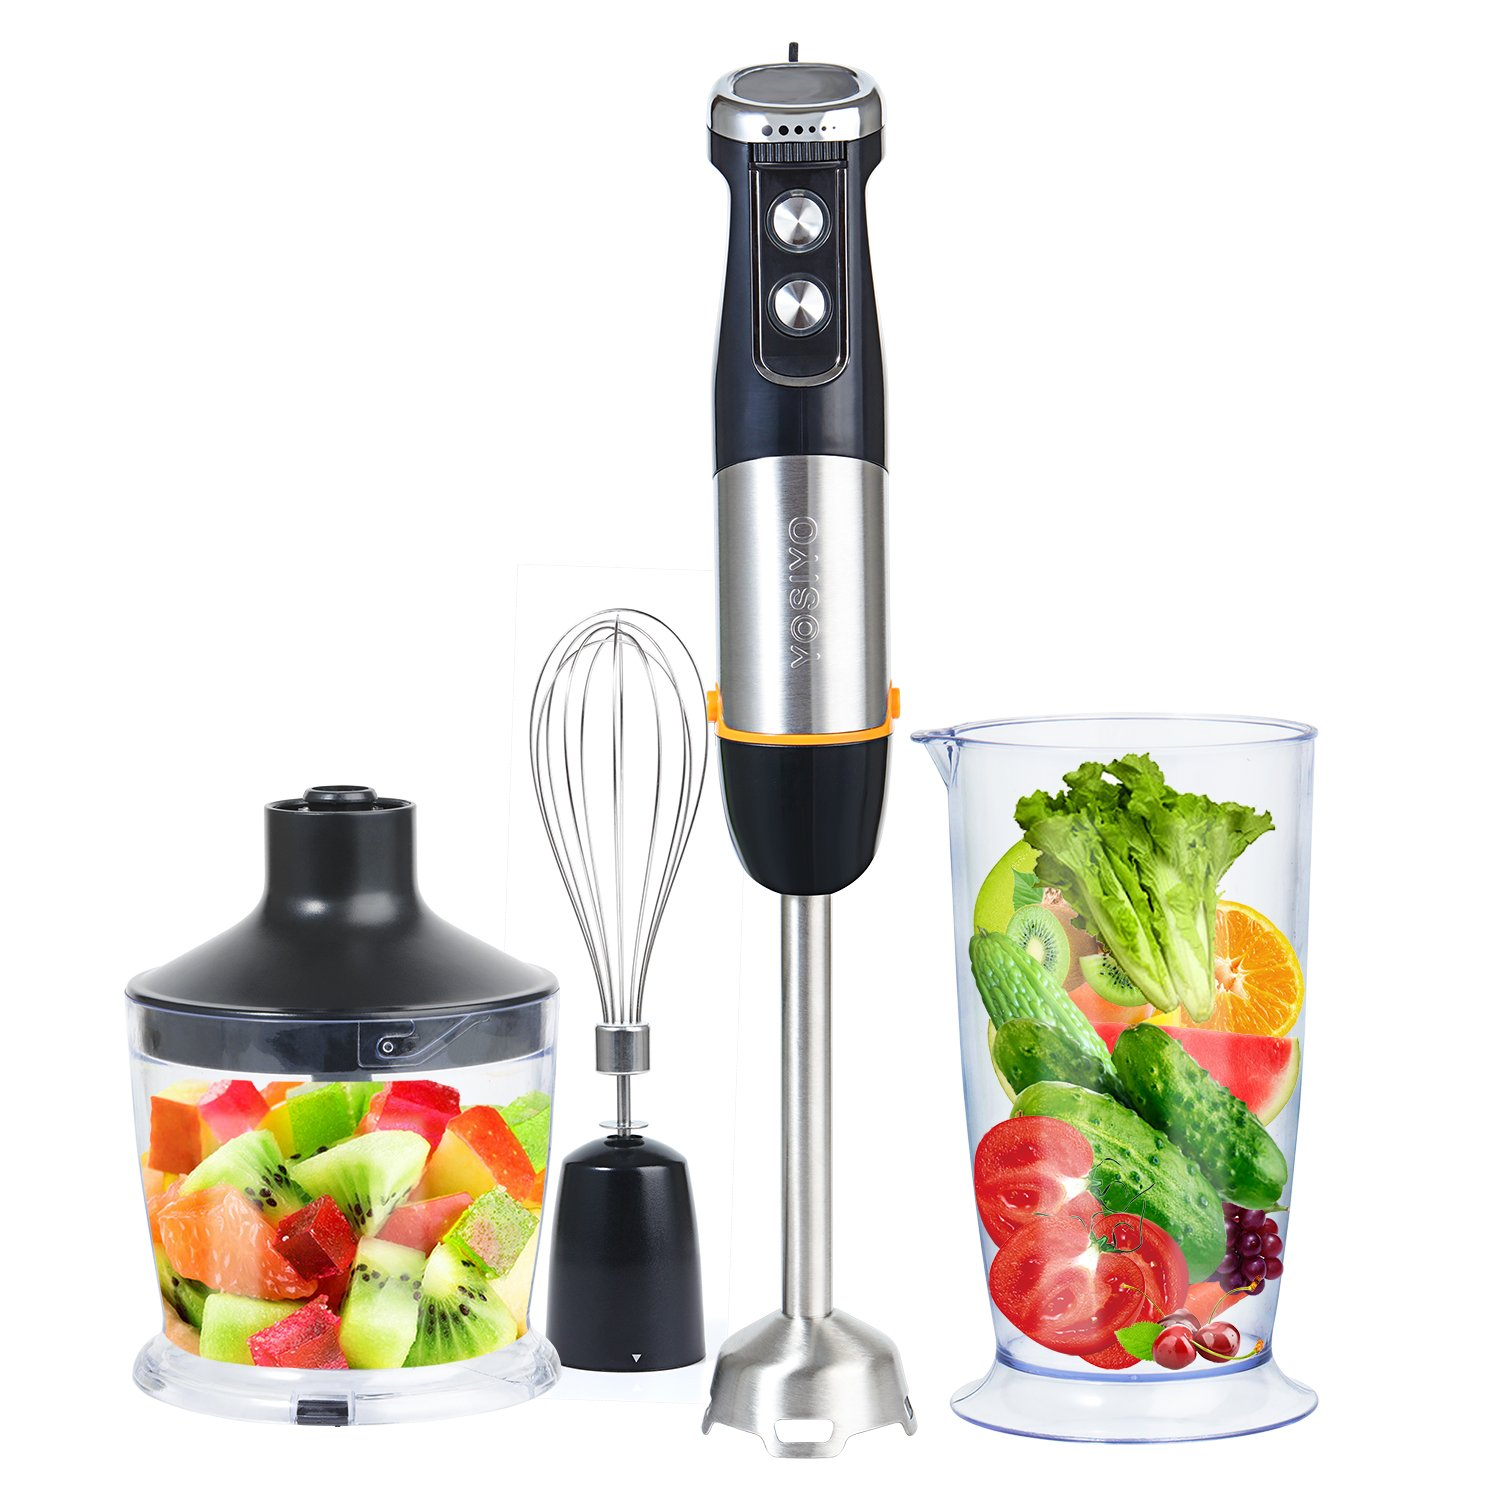 Hand Blender Set 500W Stainless Steel Hand-Held Blender, 6 Speed and Turbo Setting with Whisk, Chopper, Measuring Cup Accessories for Baby Food, Vegetable, Kitchen - Black YOSIYO Cody 2048-US